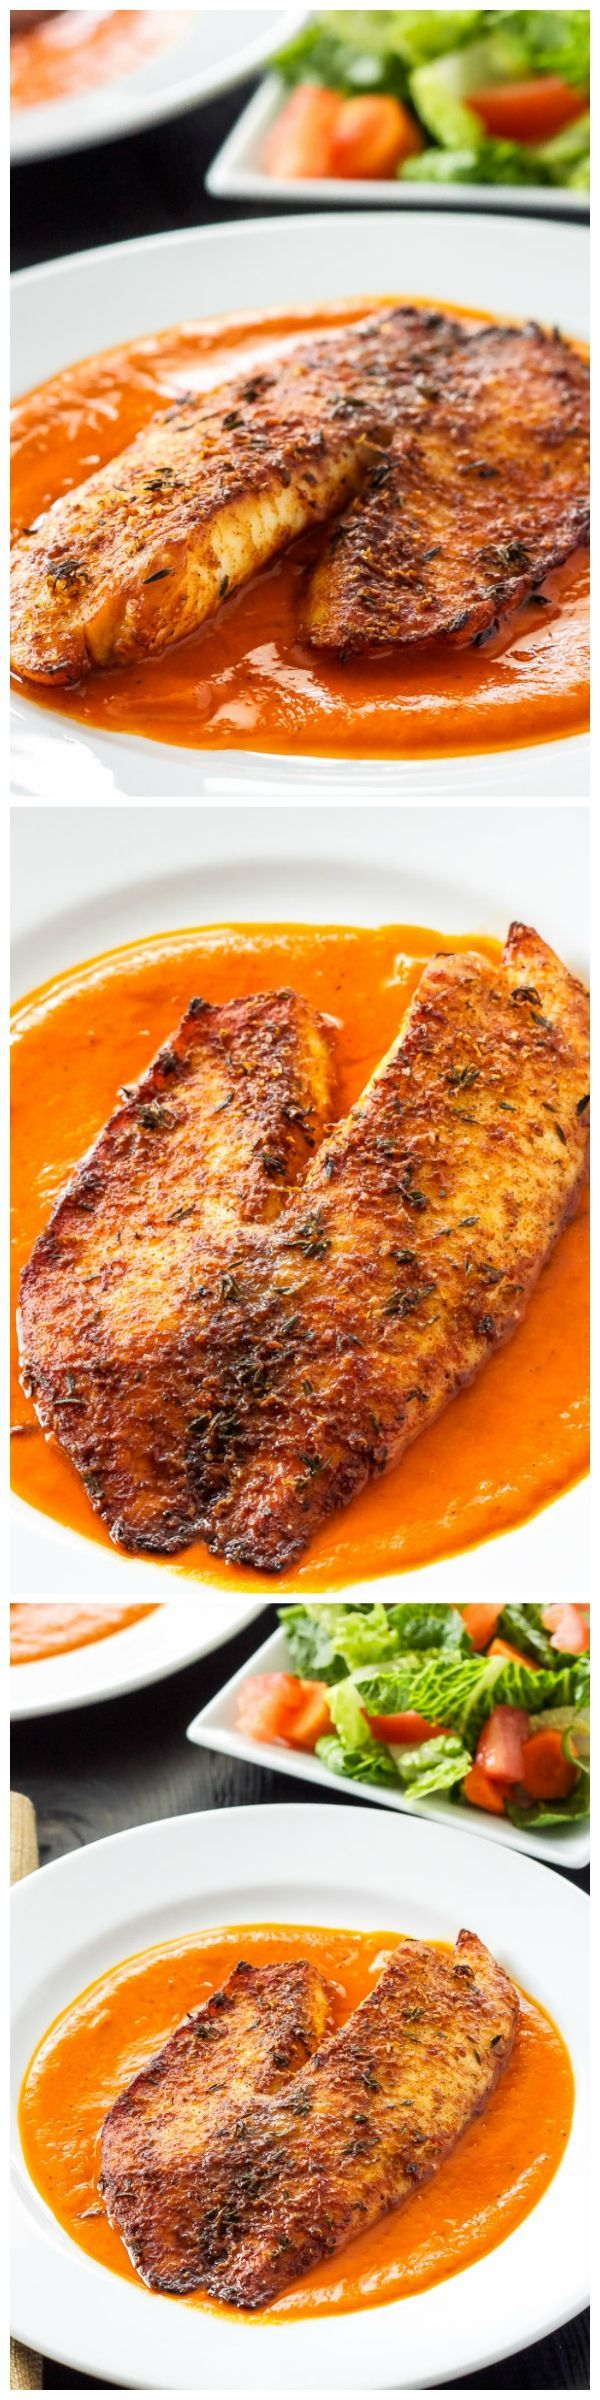 Broiled tilapia fillets with a crispy parmesan crust on top. Serve them with this delicious roasted red pepper sauce for a healthy and easy to make dinner!